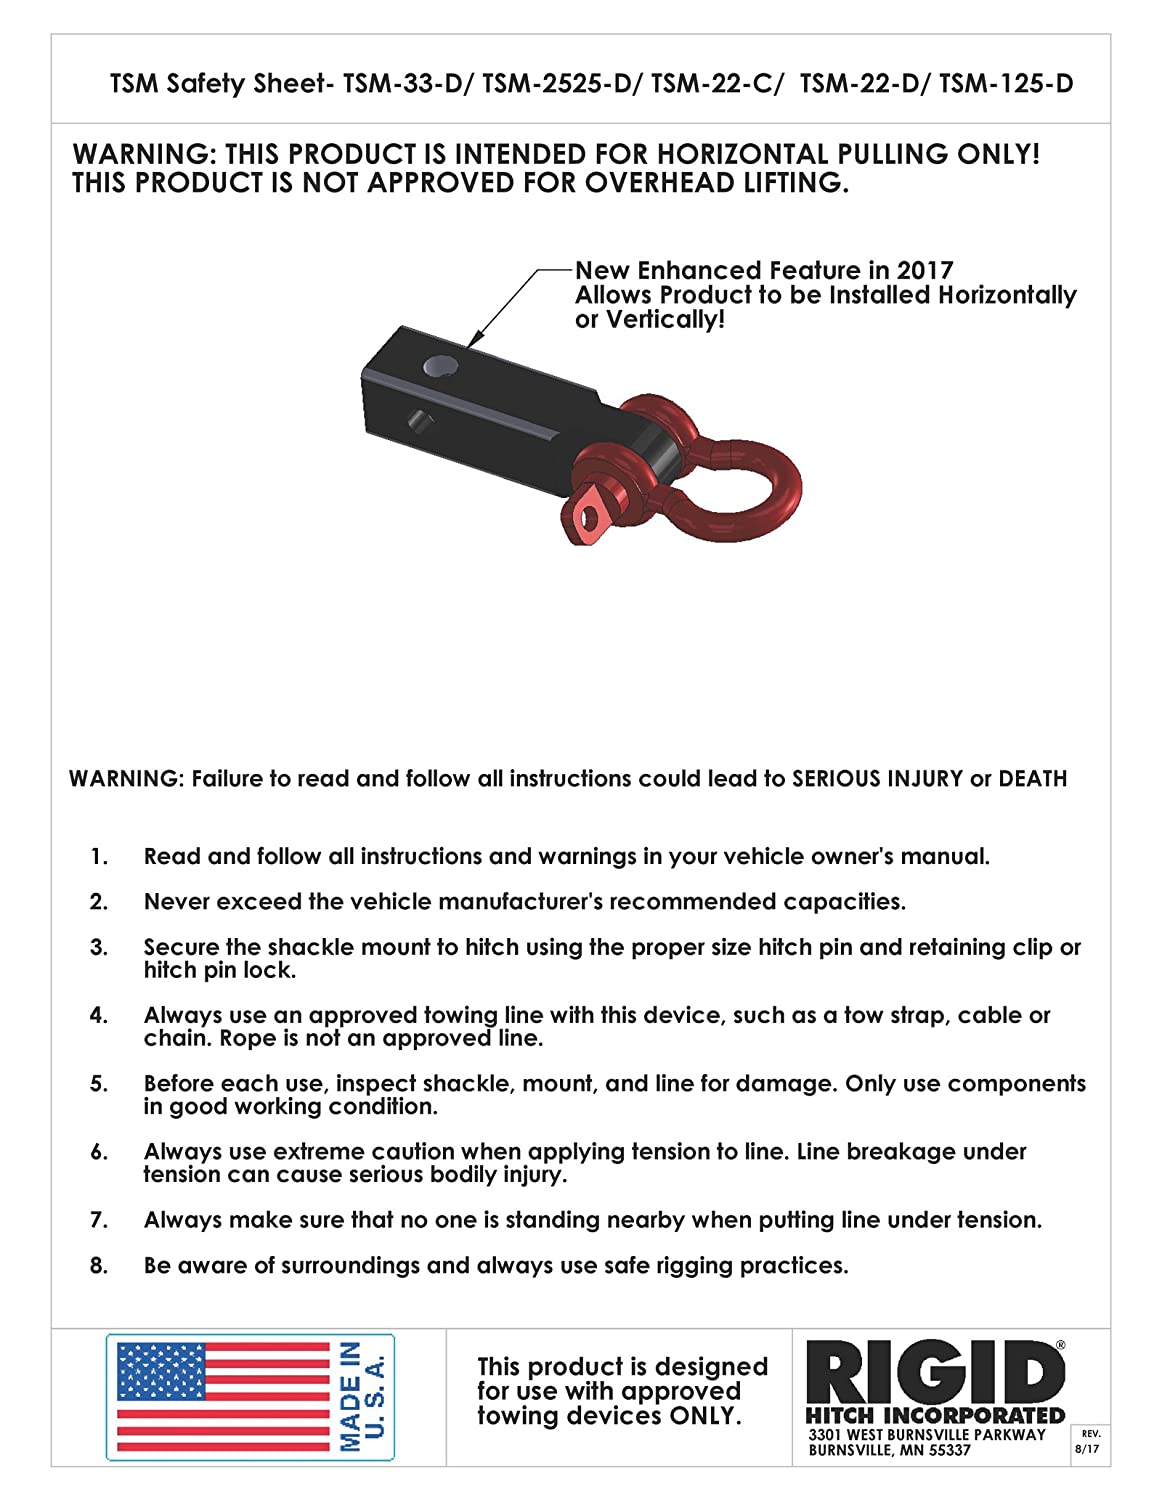 Amazon enhanced tow strap shackle mount tsm 125 d for 1 14 amazon enhanced tow strap shackle mount tsm 125 d for 1 14 receivers made in usa automotive publicscrutiny